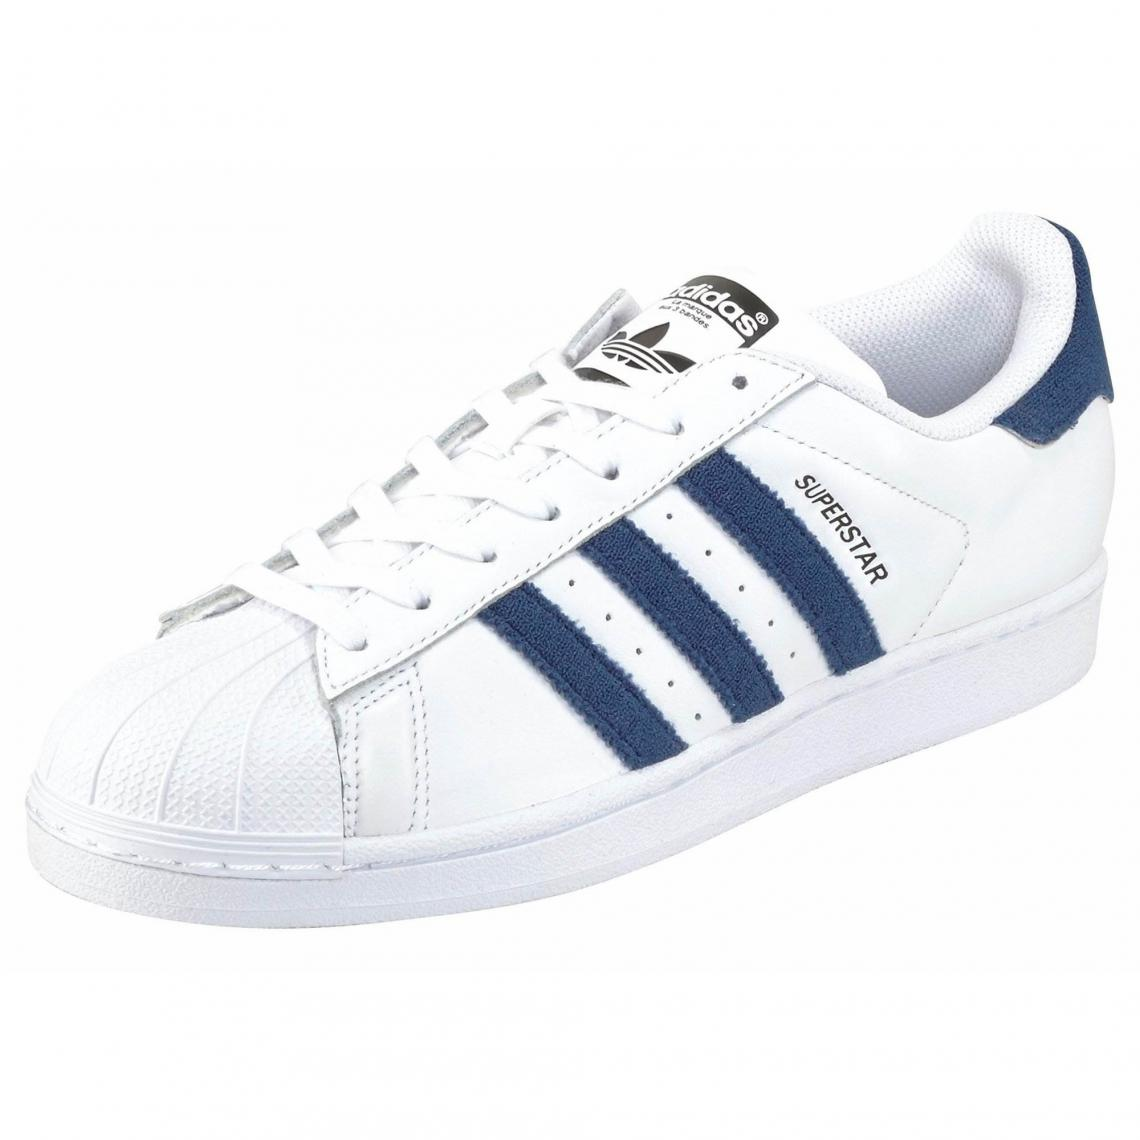 Tennis adidas Originals Superstar East River pour homme - Blanc - Noir -  Bleu Adidas Originals 0c9a4e9011b8